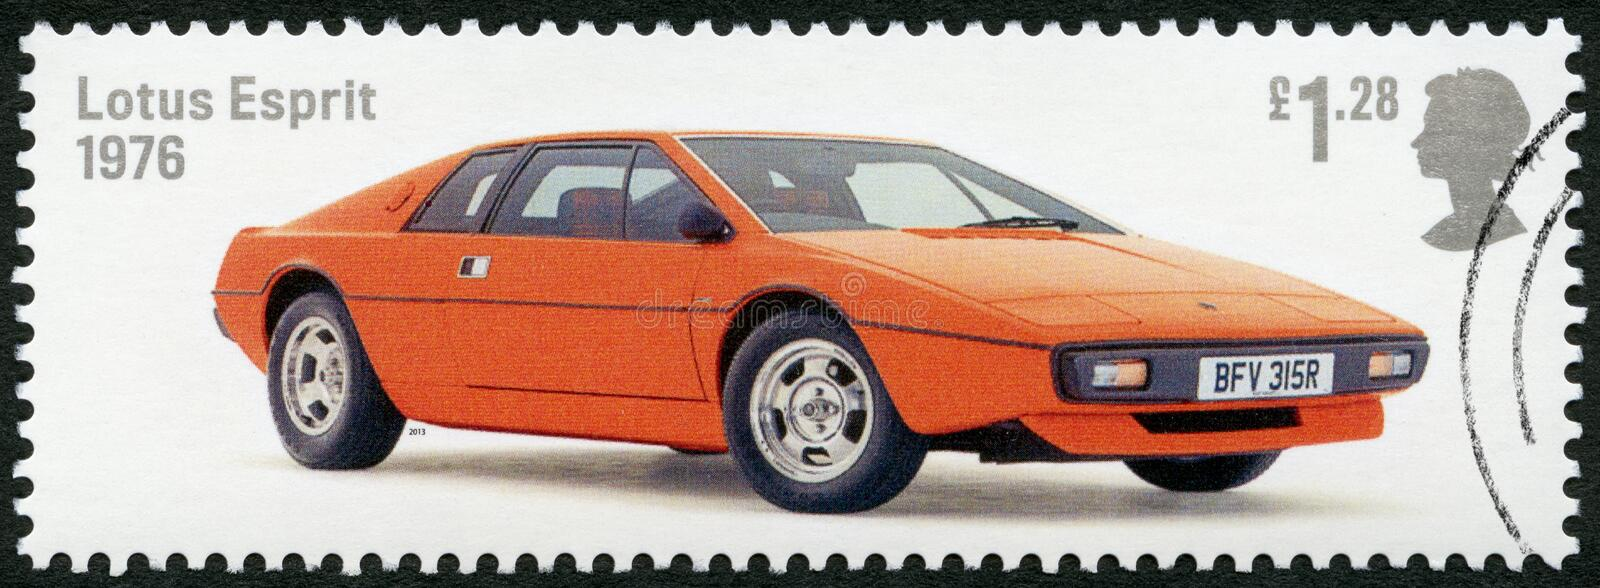 GREAT BRITAIN - 2013: shows Lotus Esprit 1976, series British Auto Legends royalty free stock photography